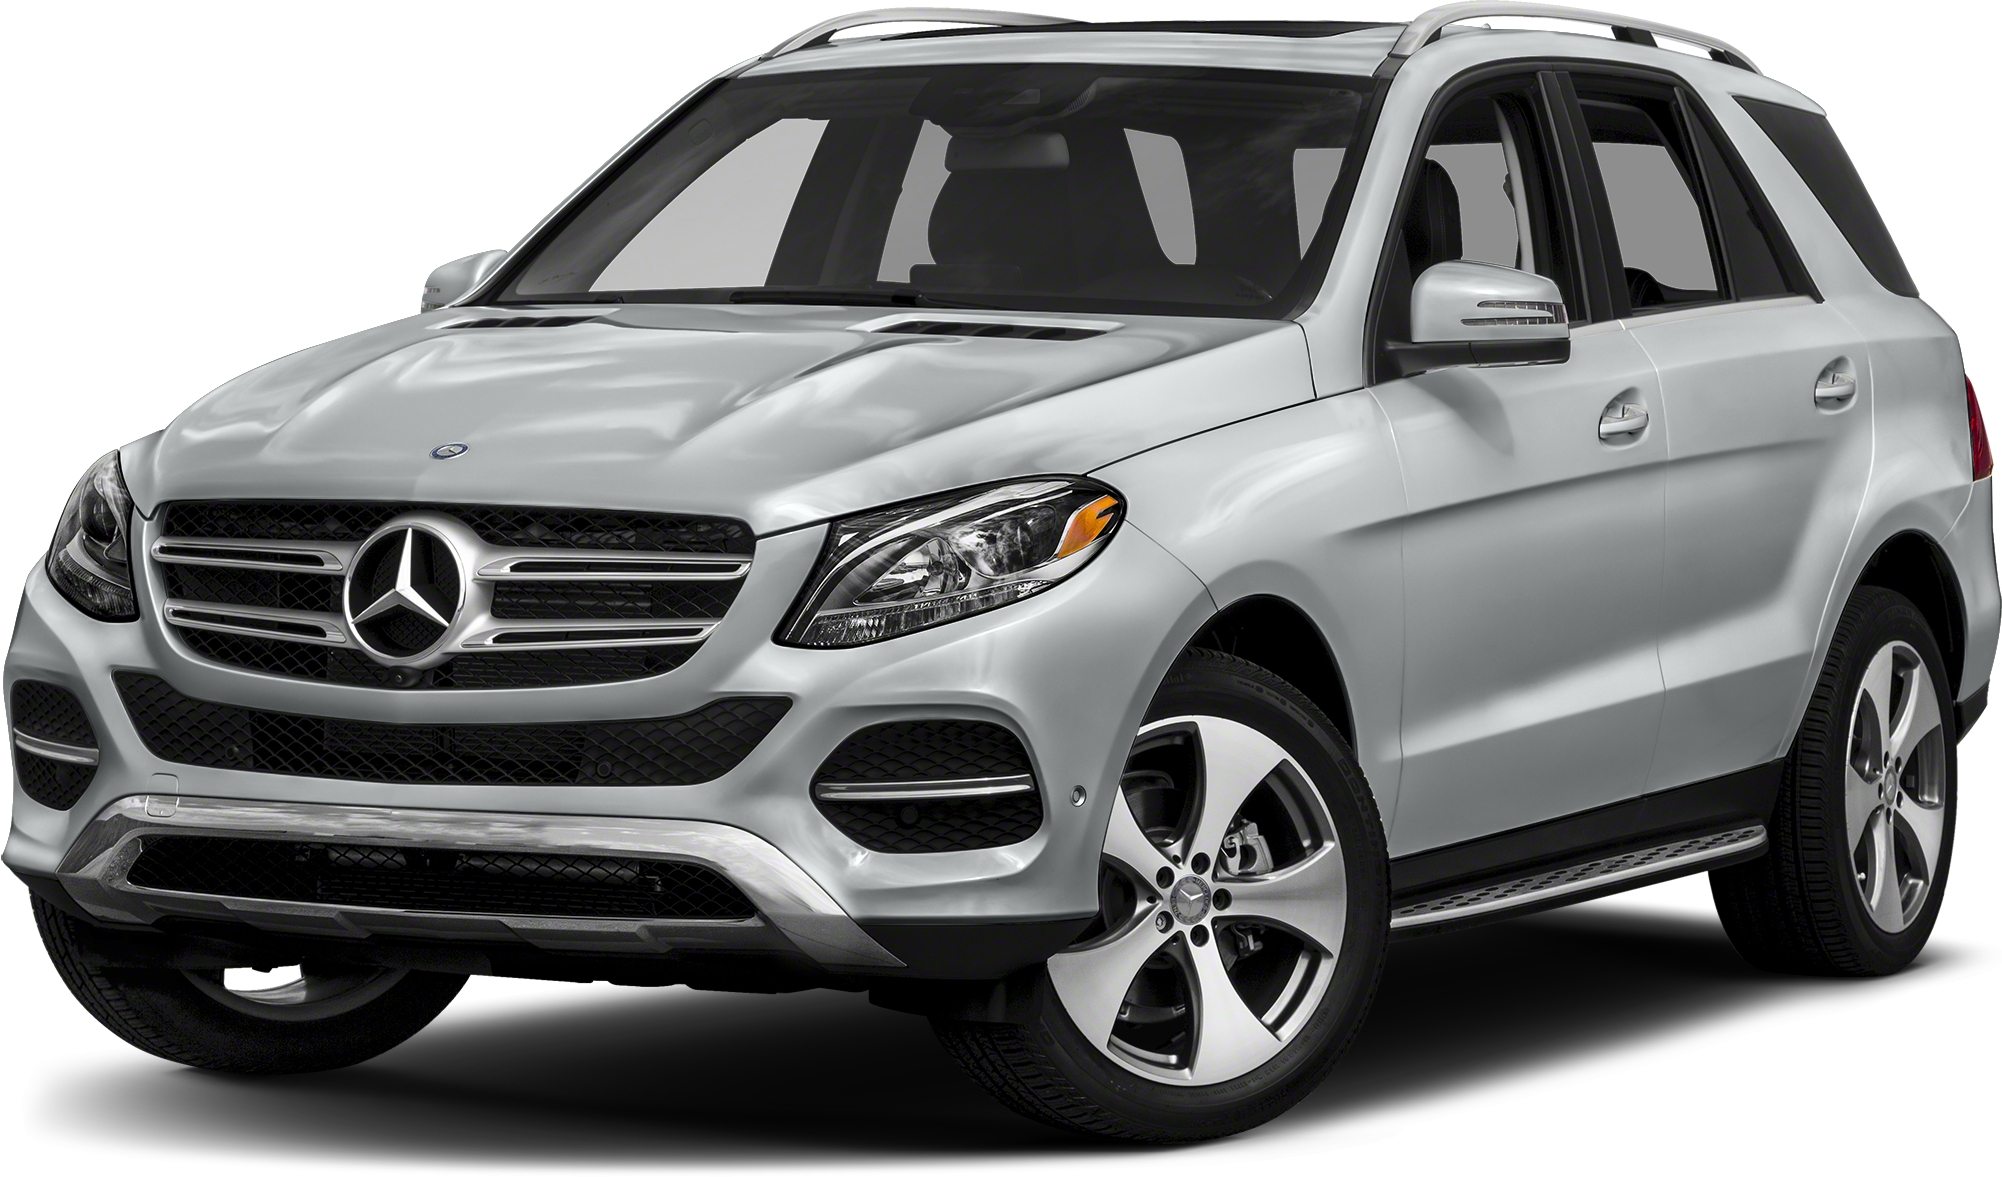 2017 mercedes benz gle 350 4matic suv 19082652 for sale price purchase lease near me. Black Bedroom Furniture Sets. Home Design Ideas